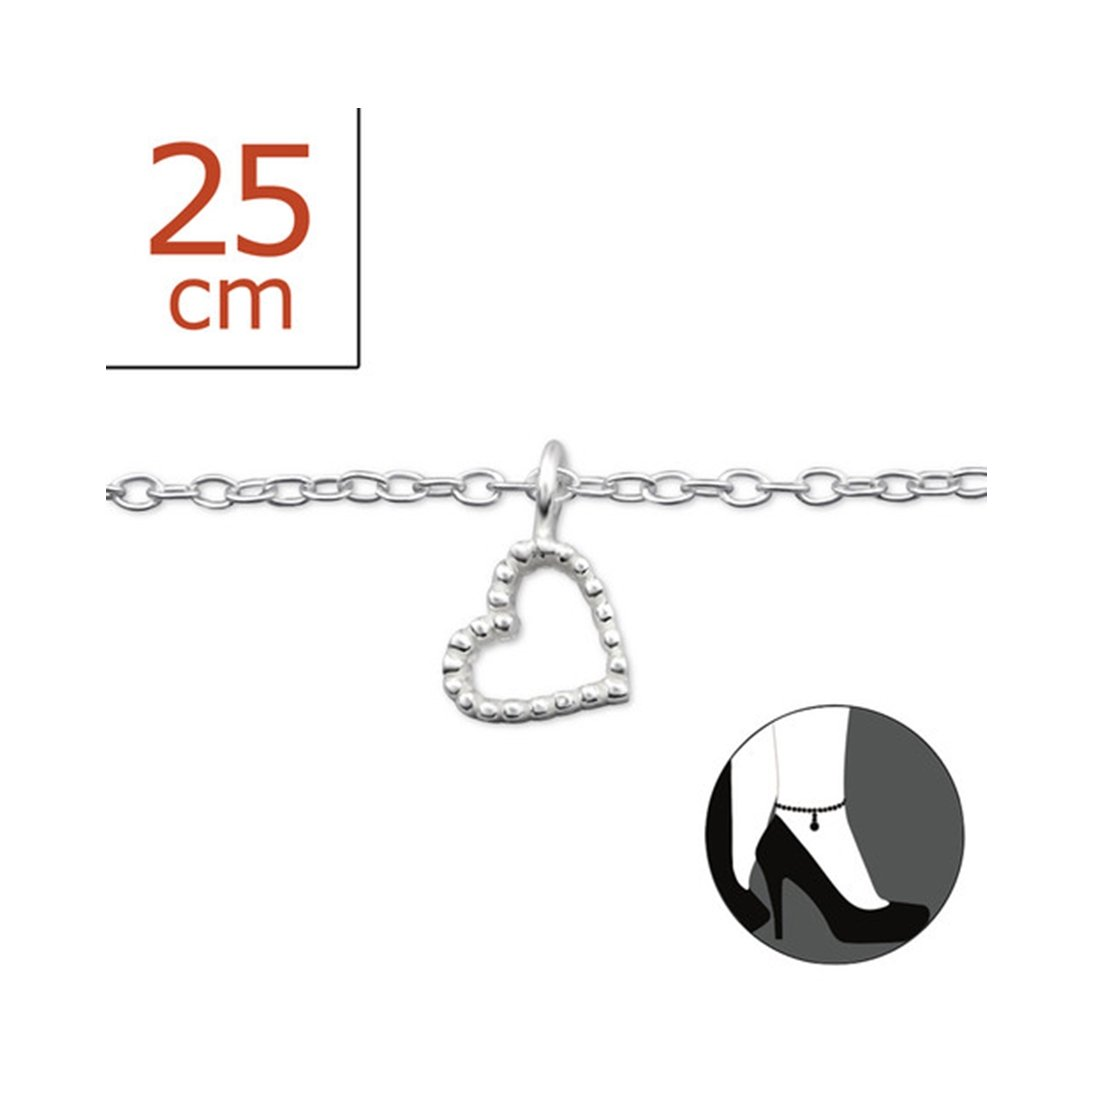 Worldjewelry Heart Silver Anklets 925 Sterling Silver for Women and Girls